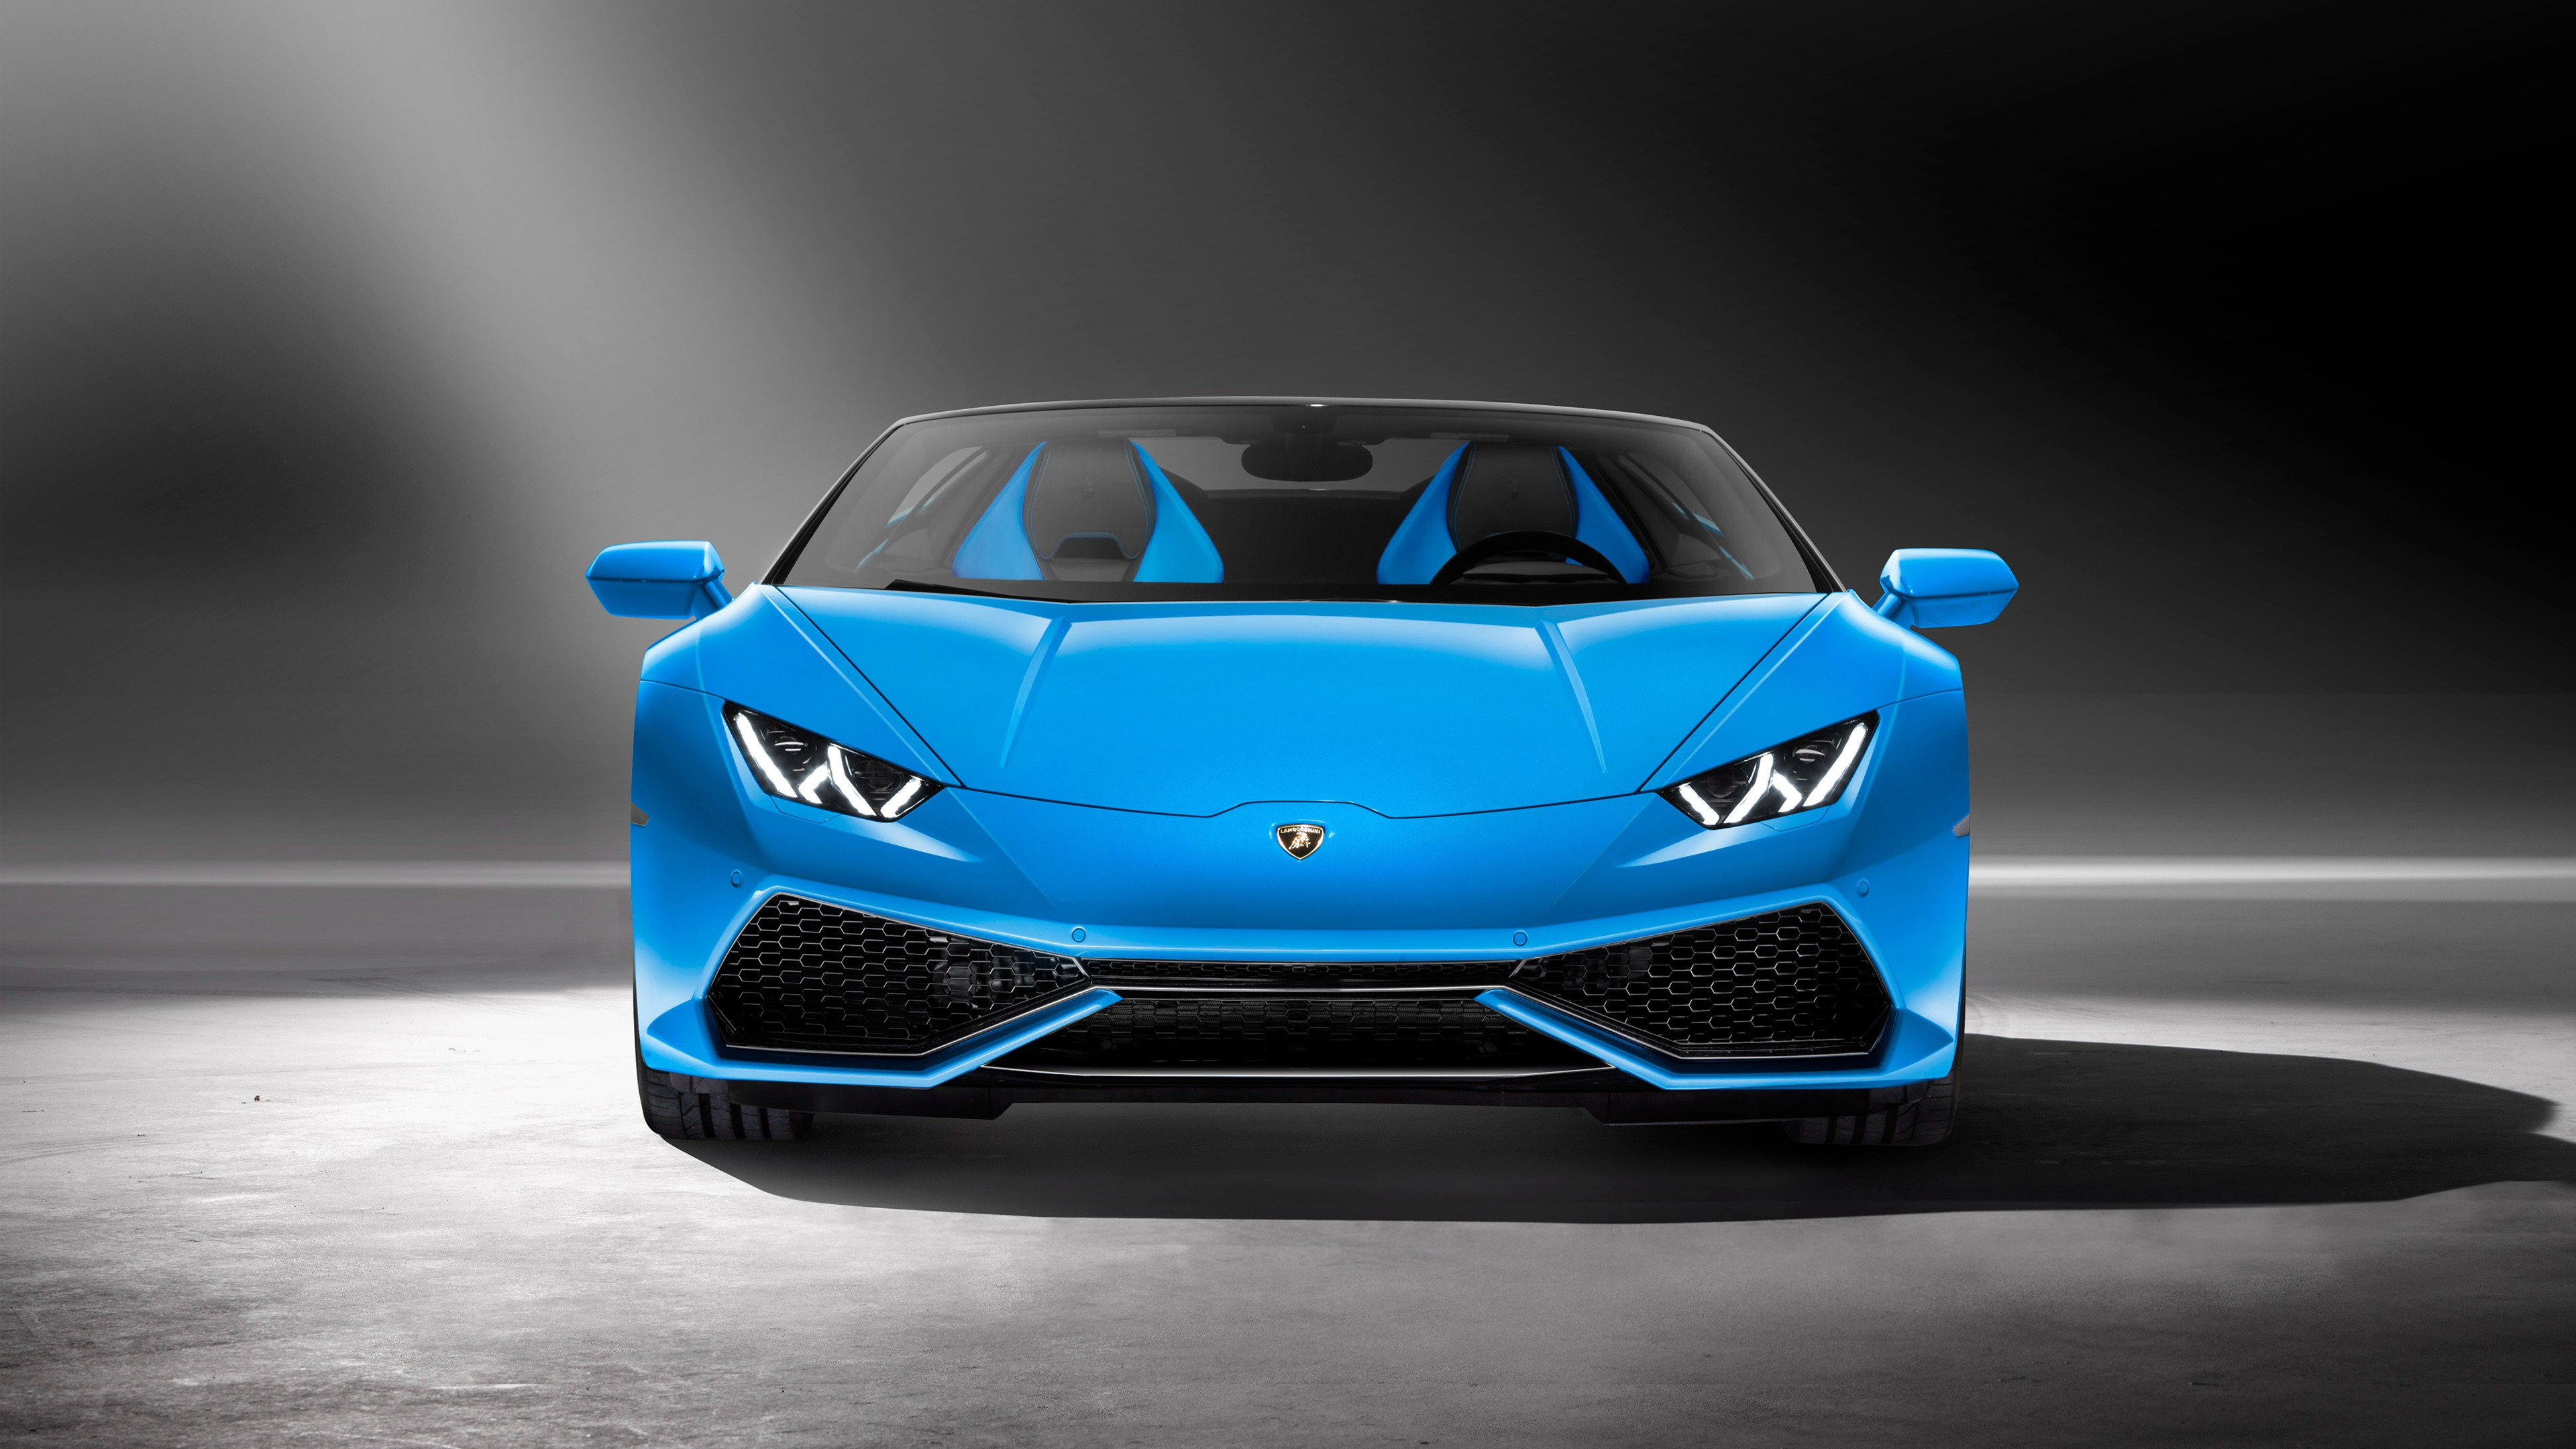 2016 lamborghini huracan lp 610 4 spyder wallpaper hd. Black Bedroom Furniture Sets. Home Design Ideas